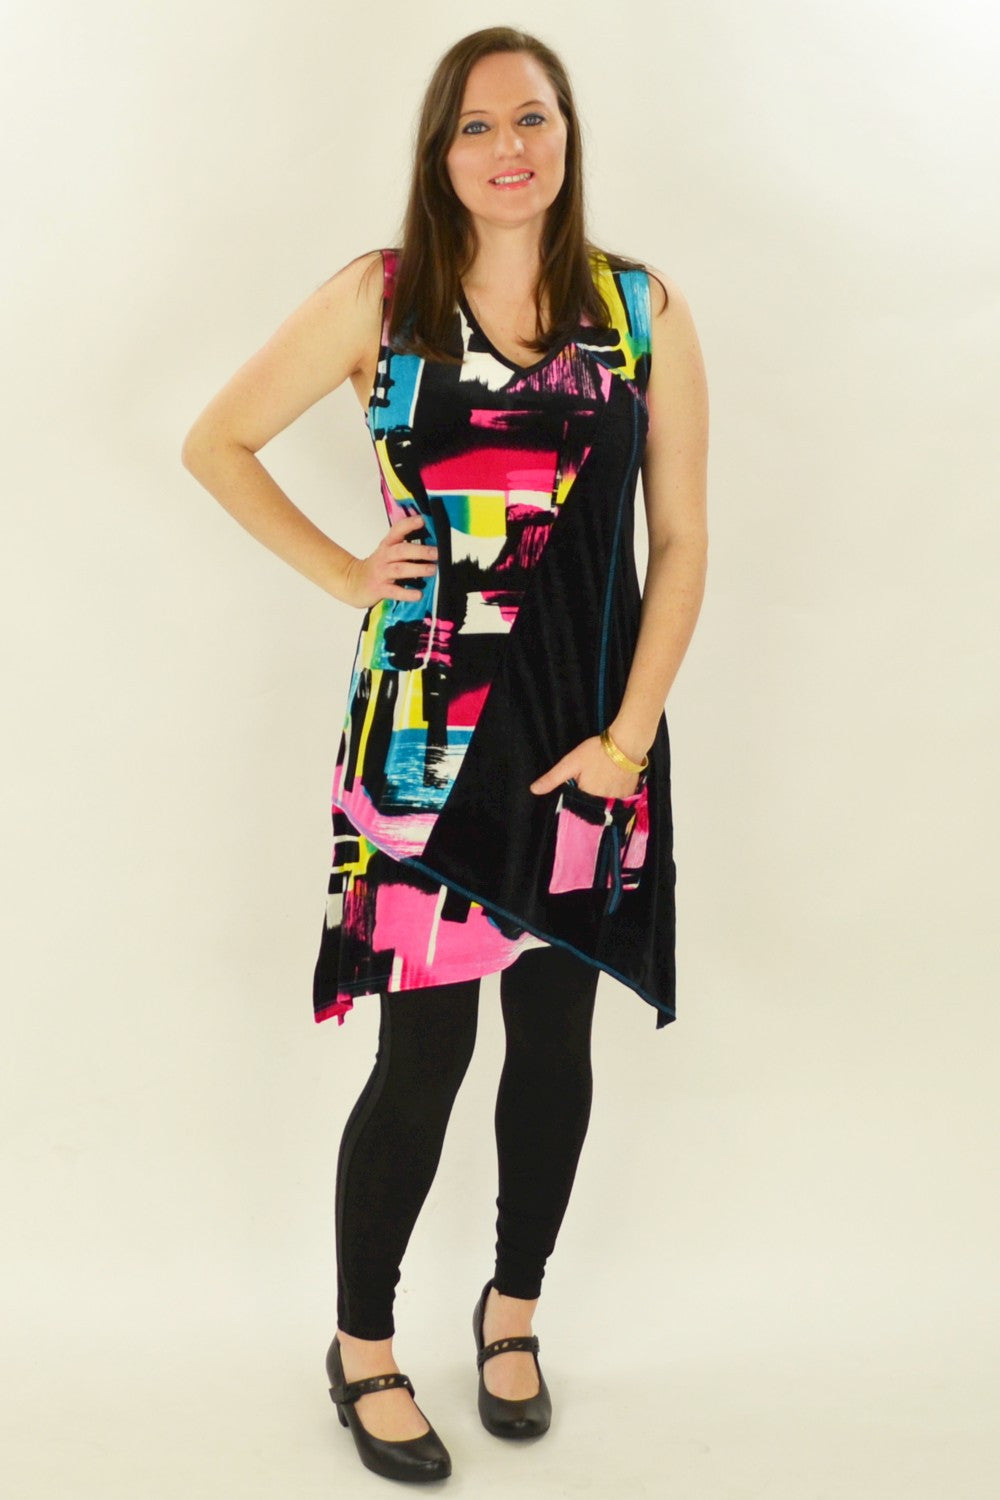 Pink Veronica Tunic - at I Love Tunics @ www.ilovetunics.com = Number One! Tunics Destination